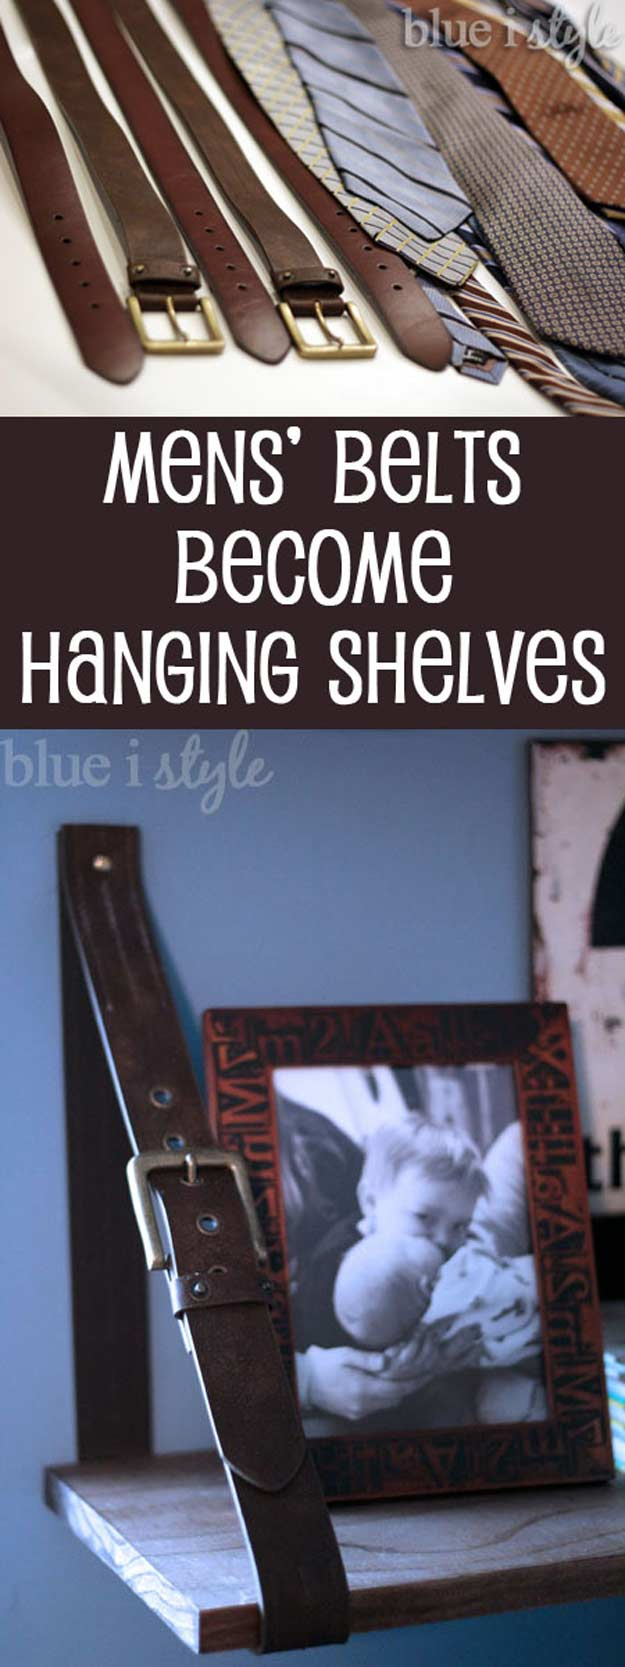 Old Belts | Things To Never Throw Away As A DIYer [2nd Edition] | DIY Projects